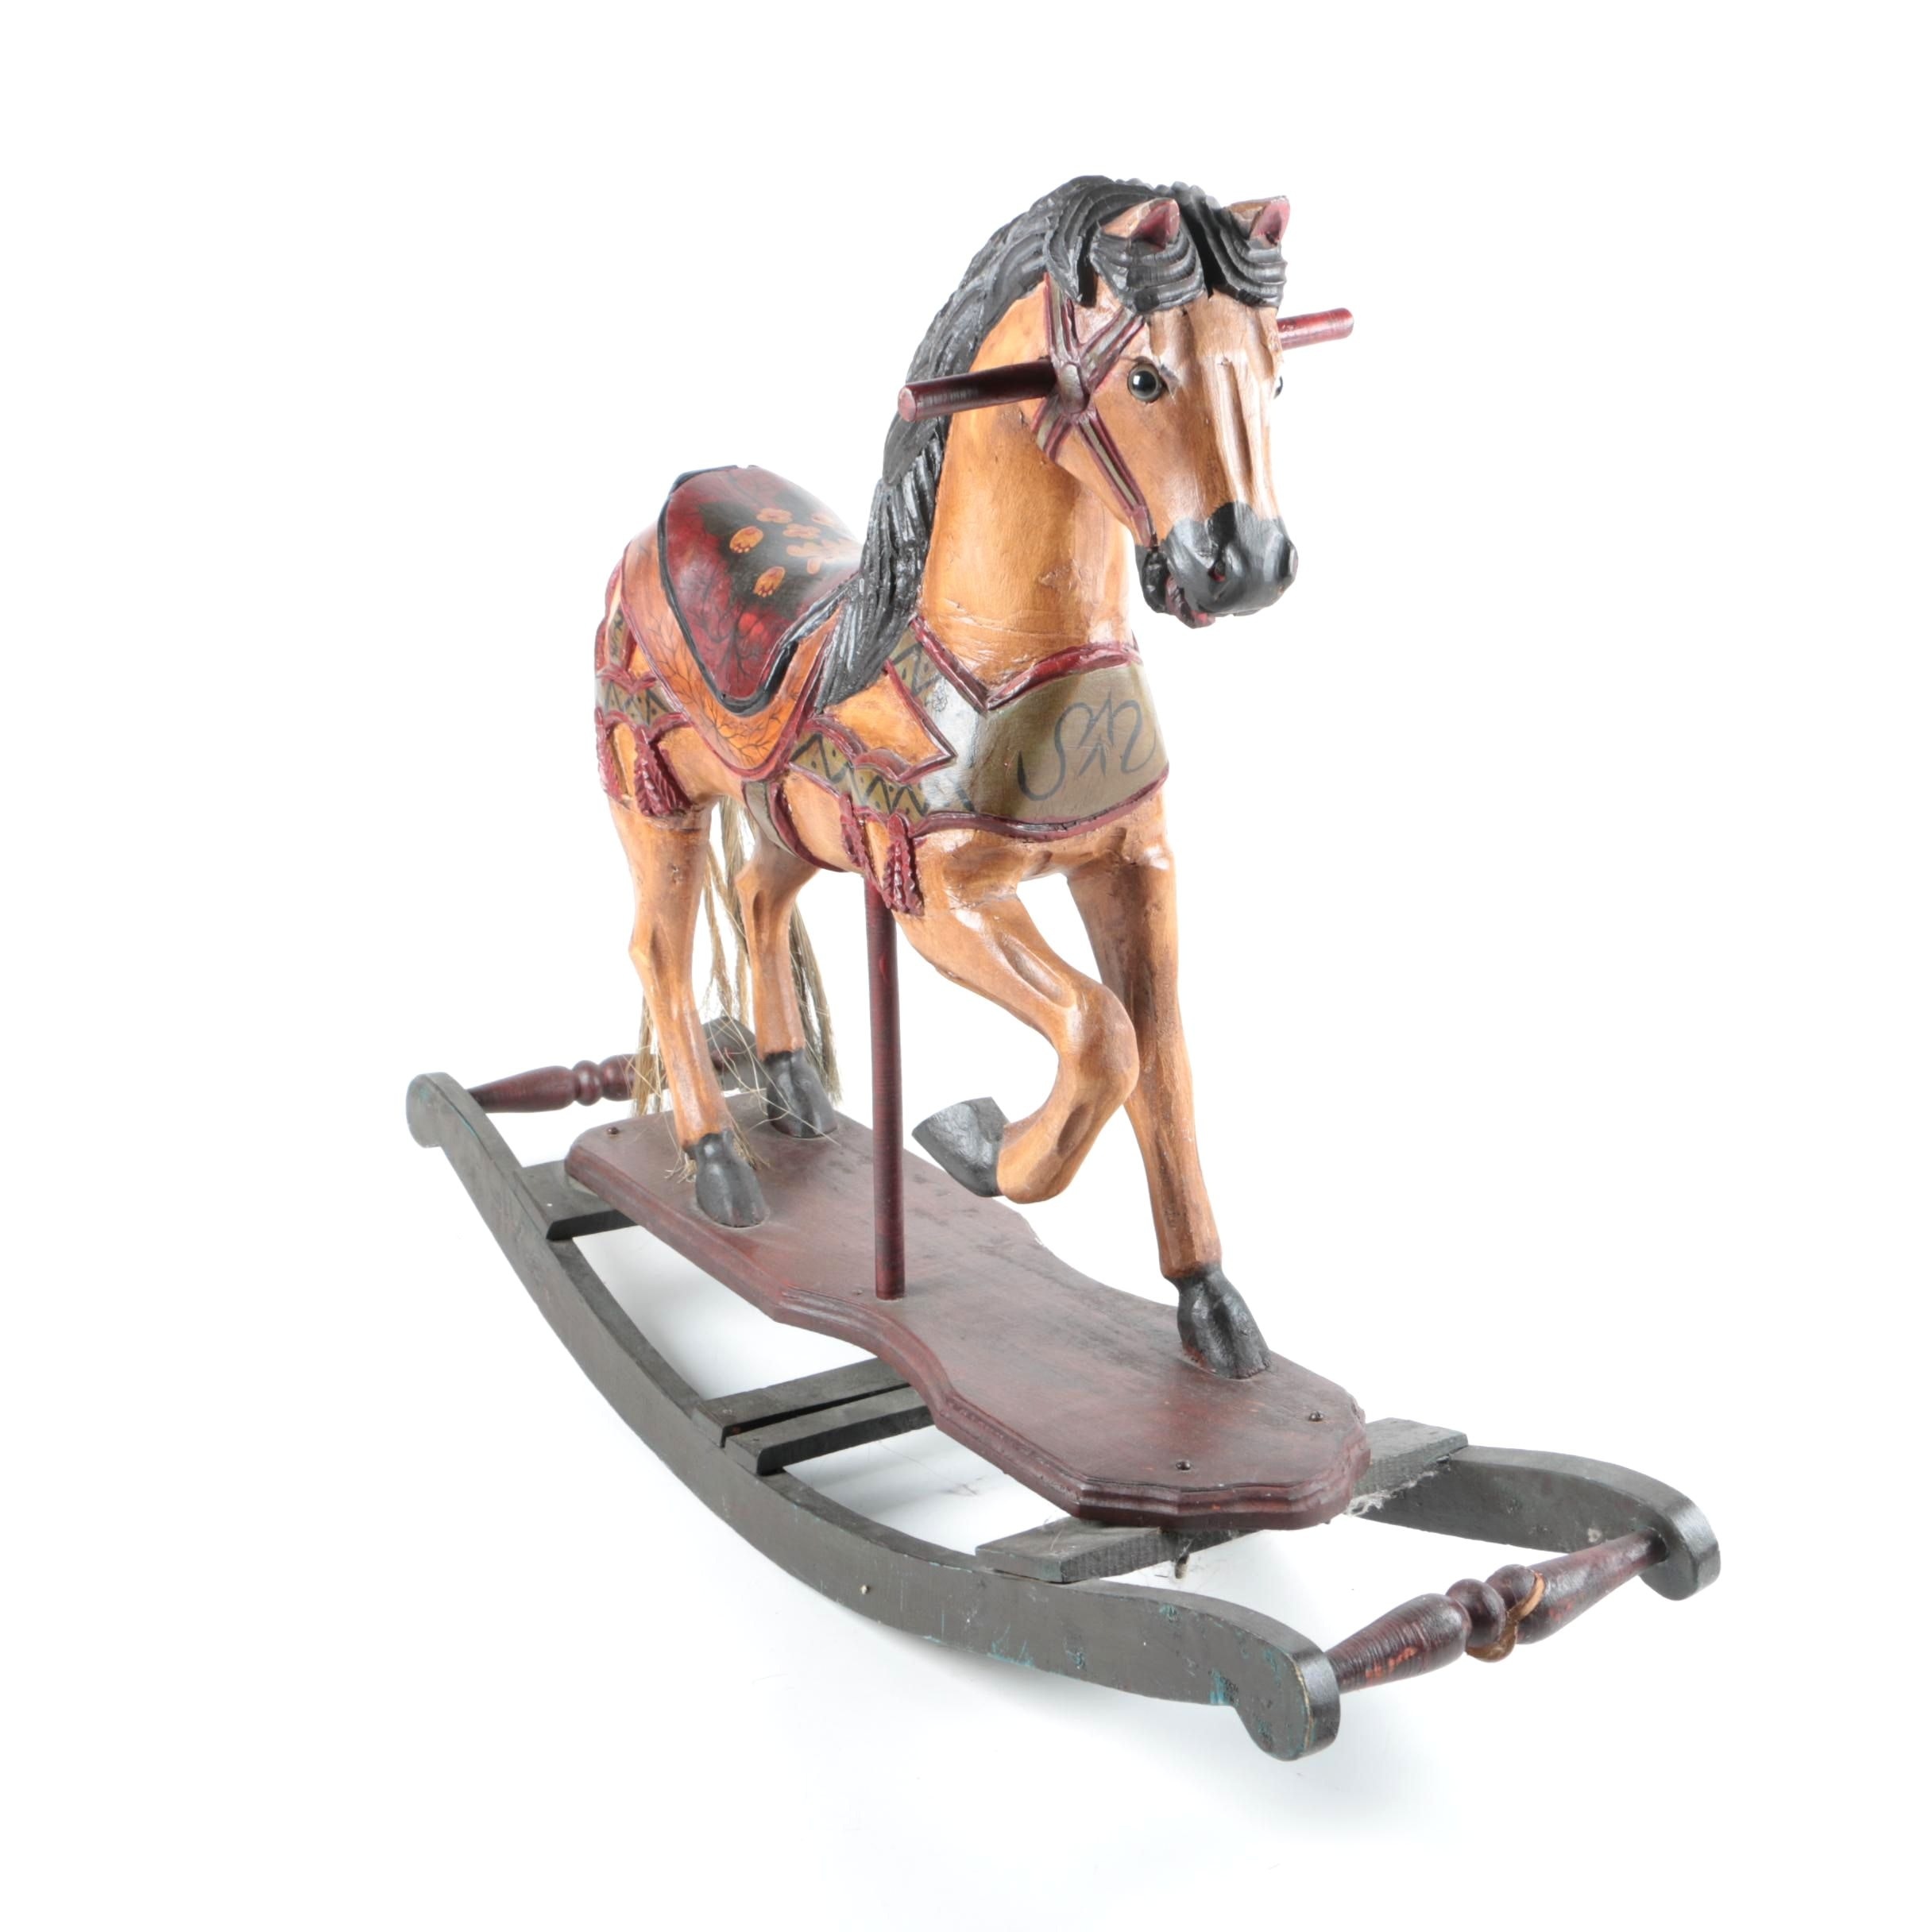 Vintage Hand-Decorated Rocking Horse